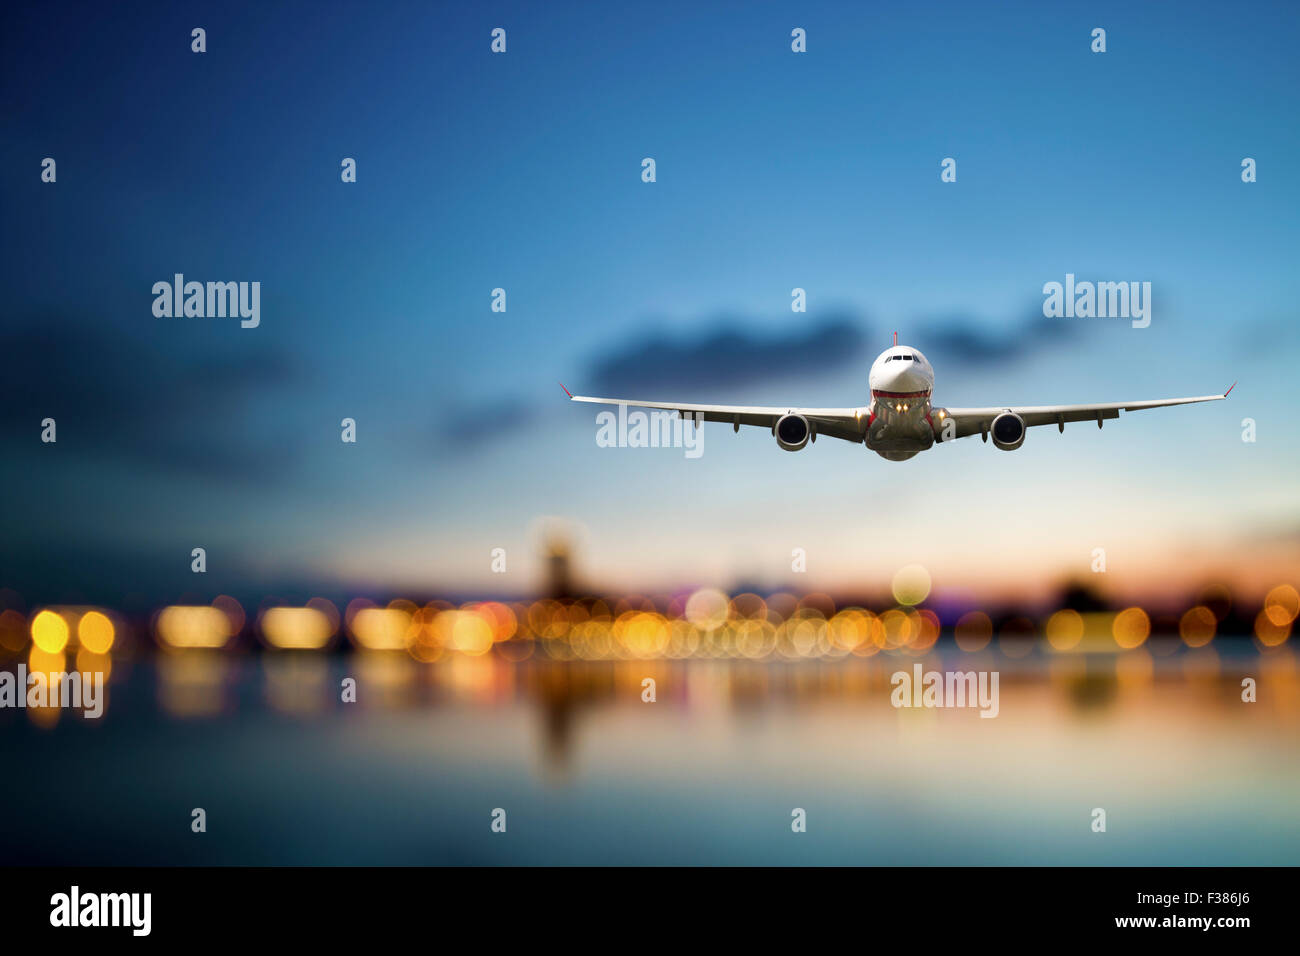 perspective view of jet airliner in flight with bokeh background - Stock Image